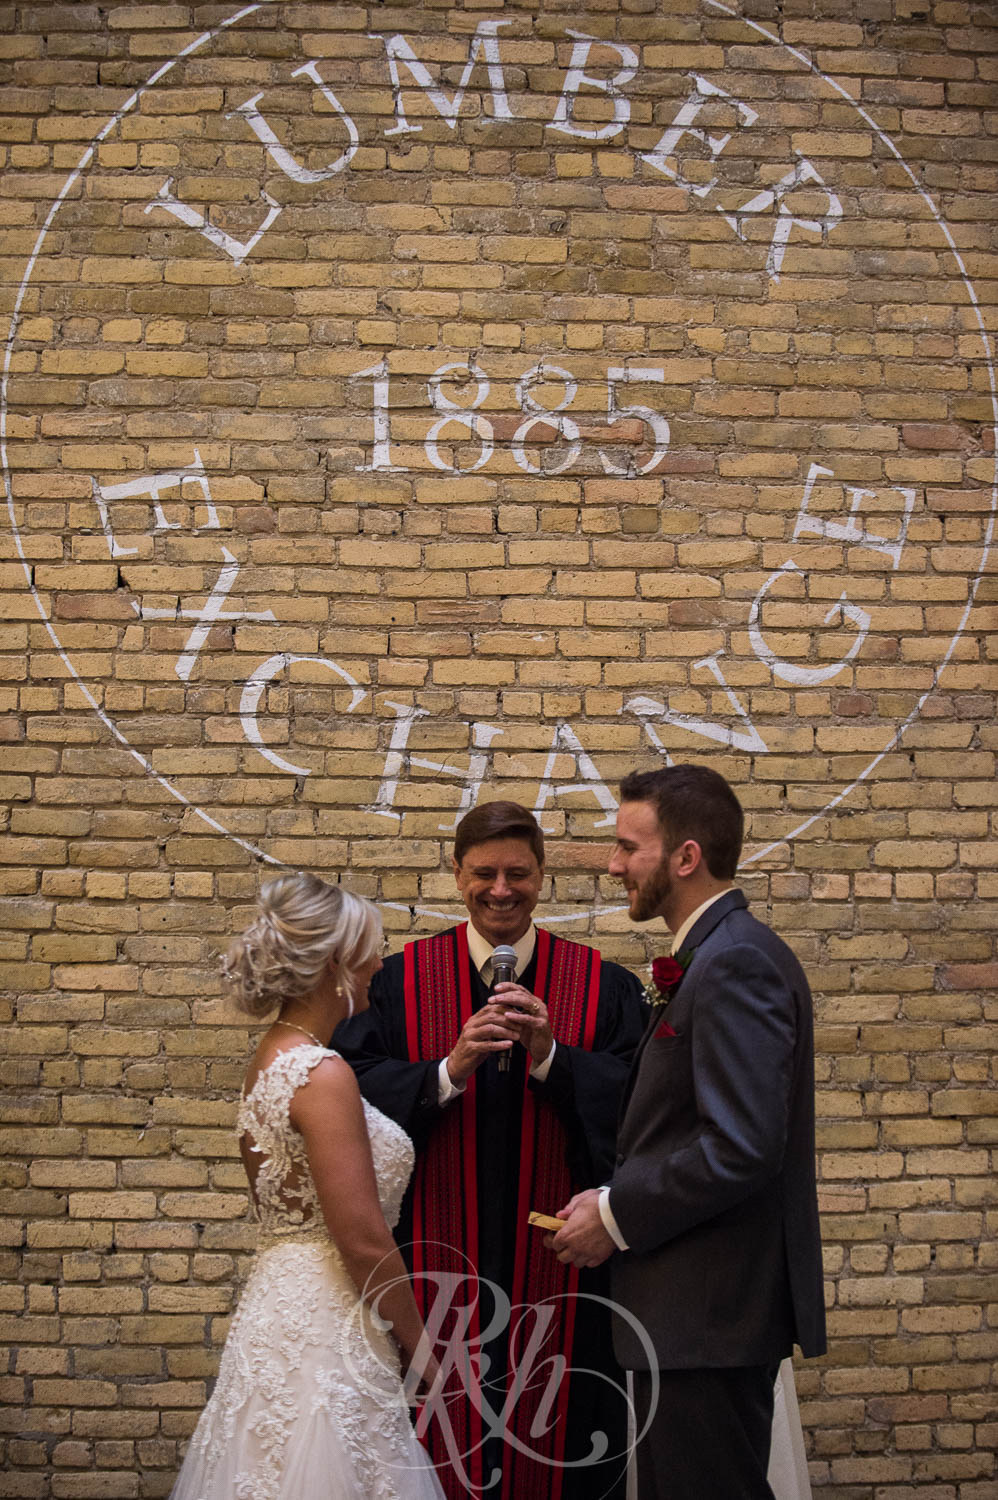 Katie & Jeff - Minnesota Wedding Photography - Lumber Exchange Building - RKH Images - Blog  (35 of 49).jpg